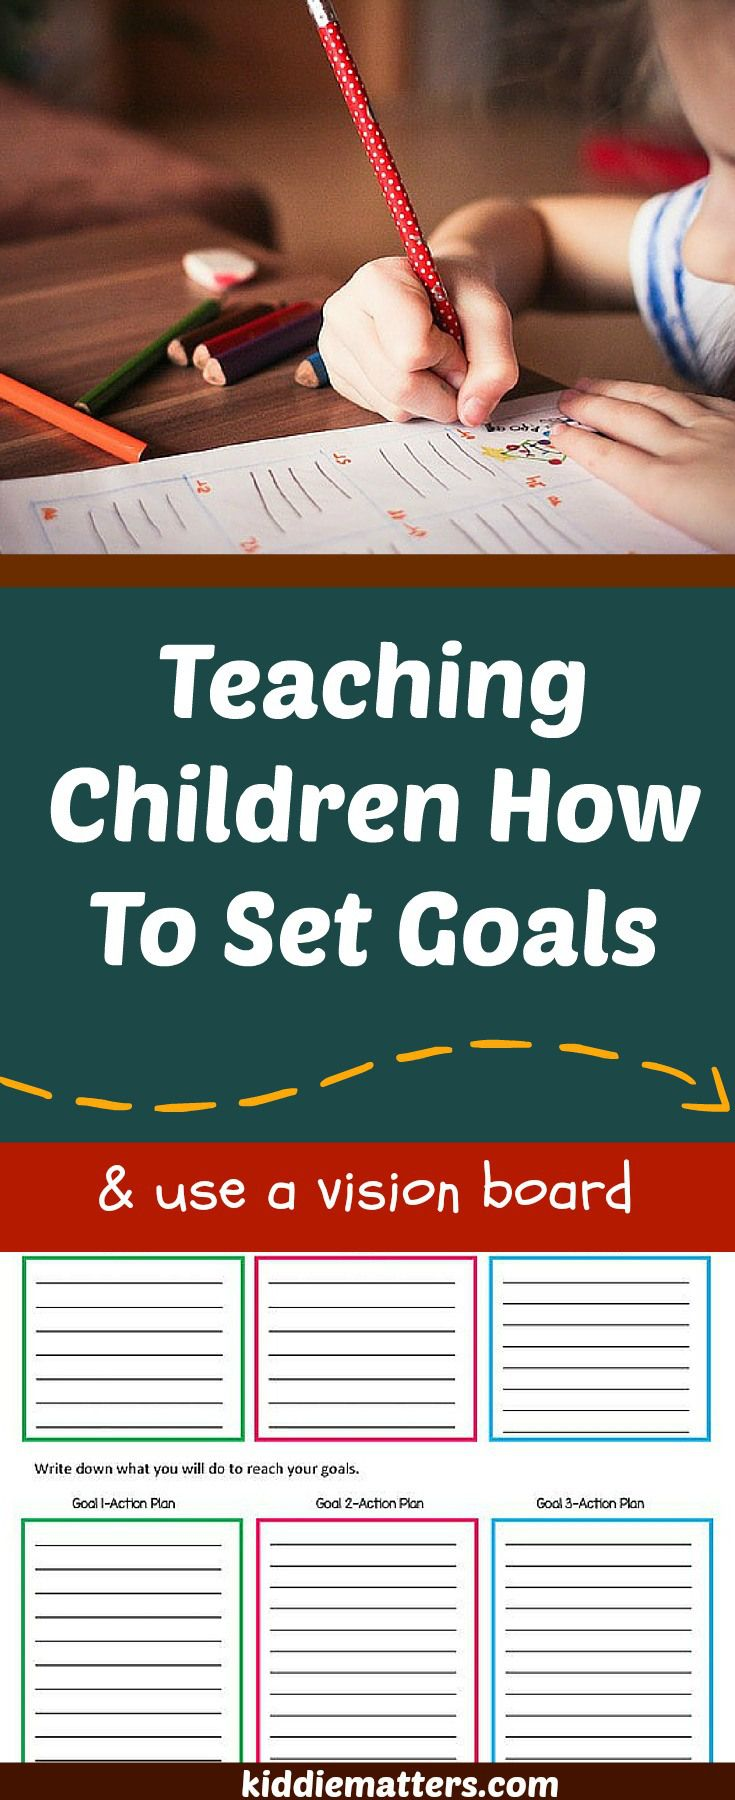 Teaching Kids to Set Goals with Free Printable!!   One way that parents and teachers can help develop children's executive functioning skills is to teach them how to set goals.  Making a vision board is a fun activity you can use to help kids set goals  Also included in this article is a free printable goals worksheet that can be used at home and at school.